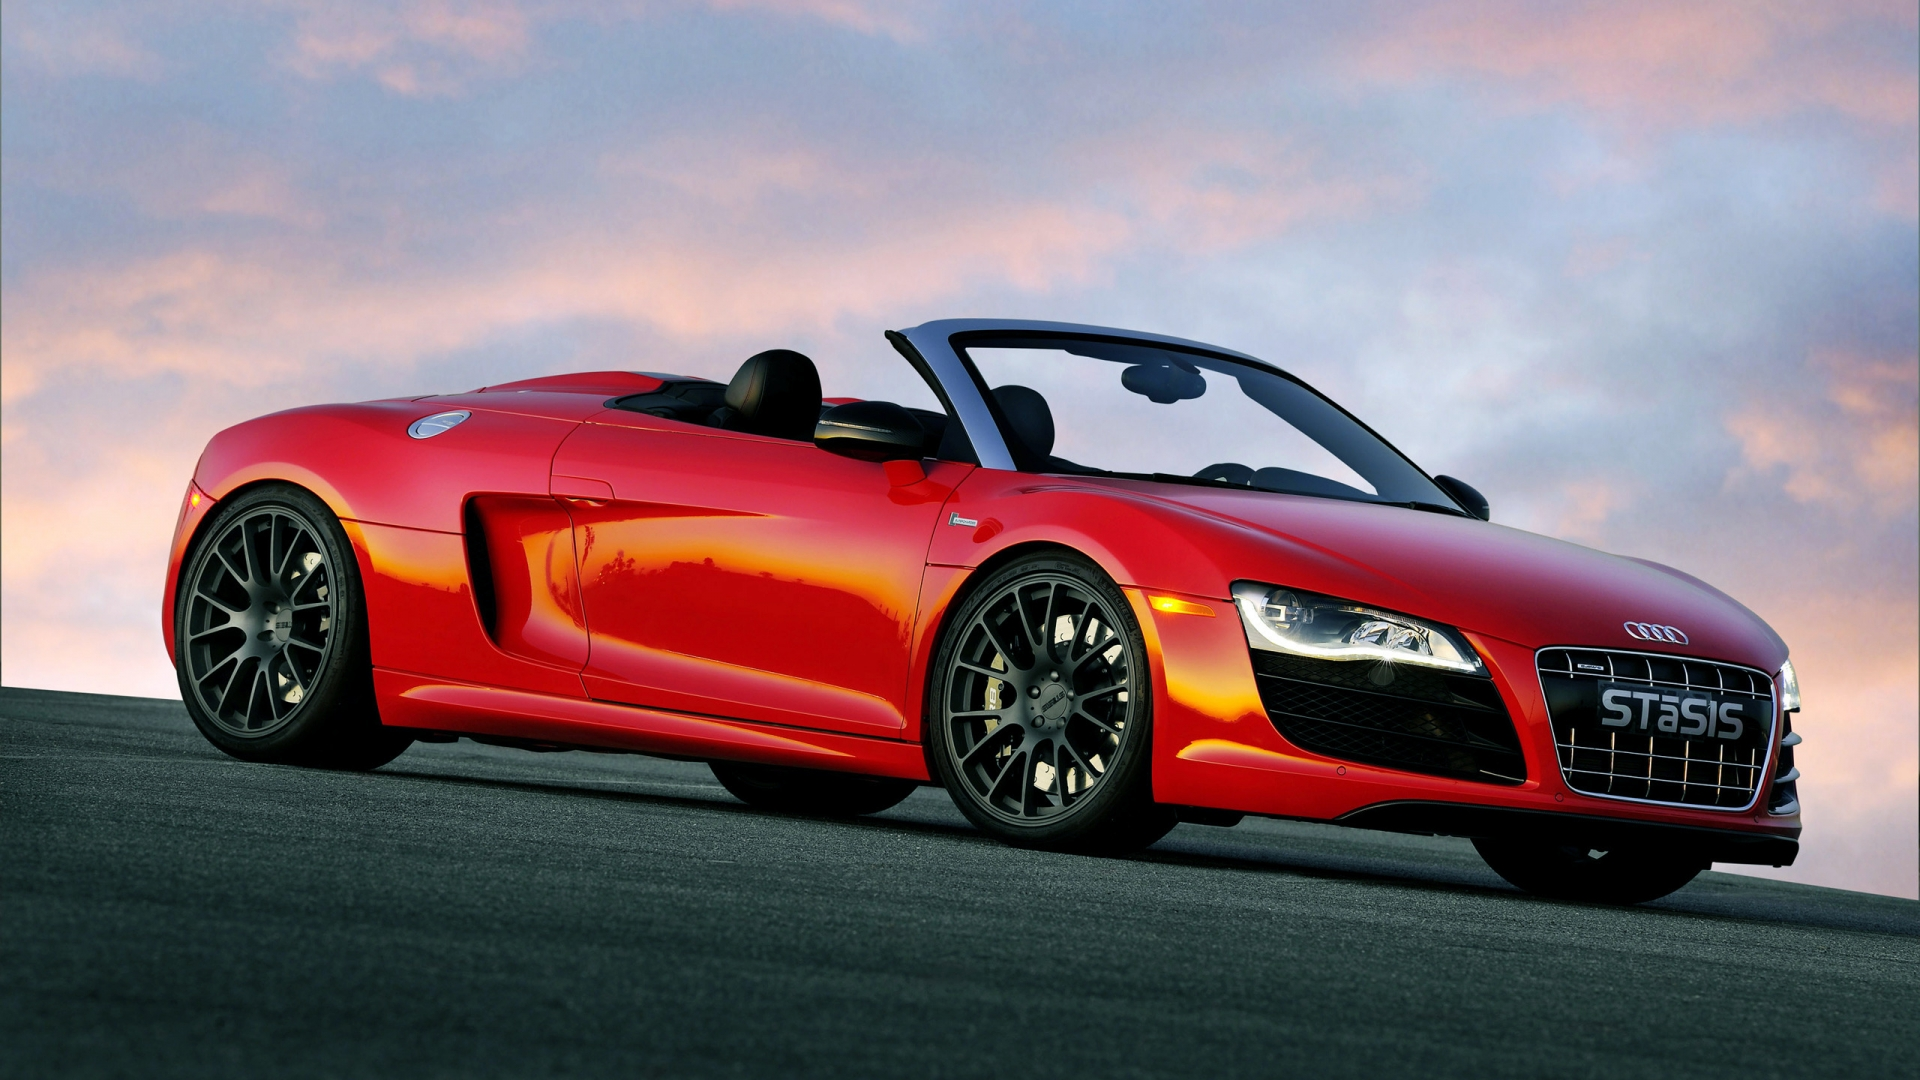 Stasis Audi R8 V10 for 1920 x 1080 HDTV 1080p resolution